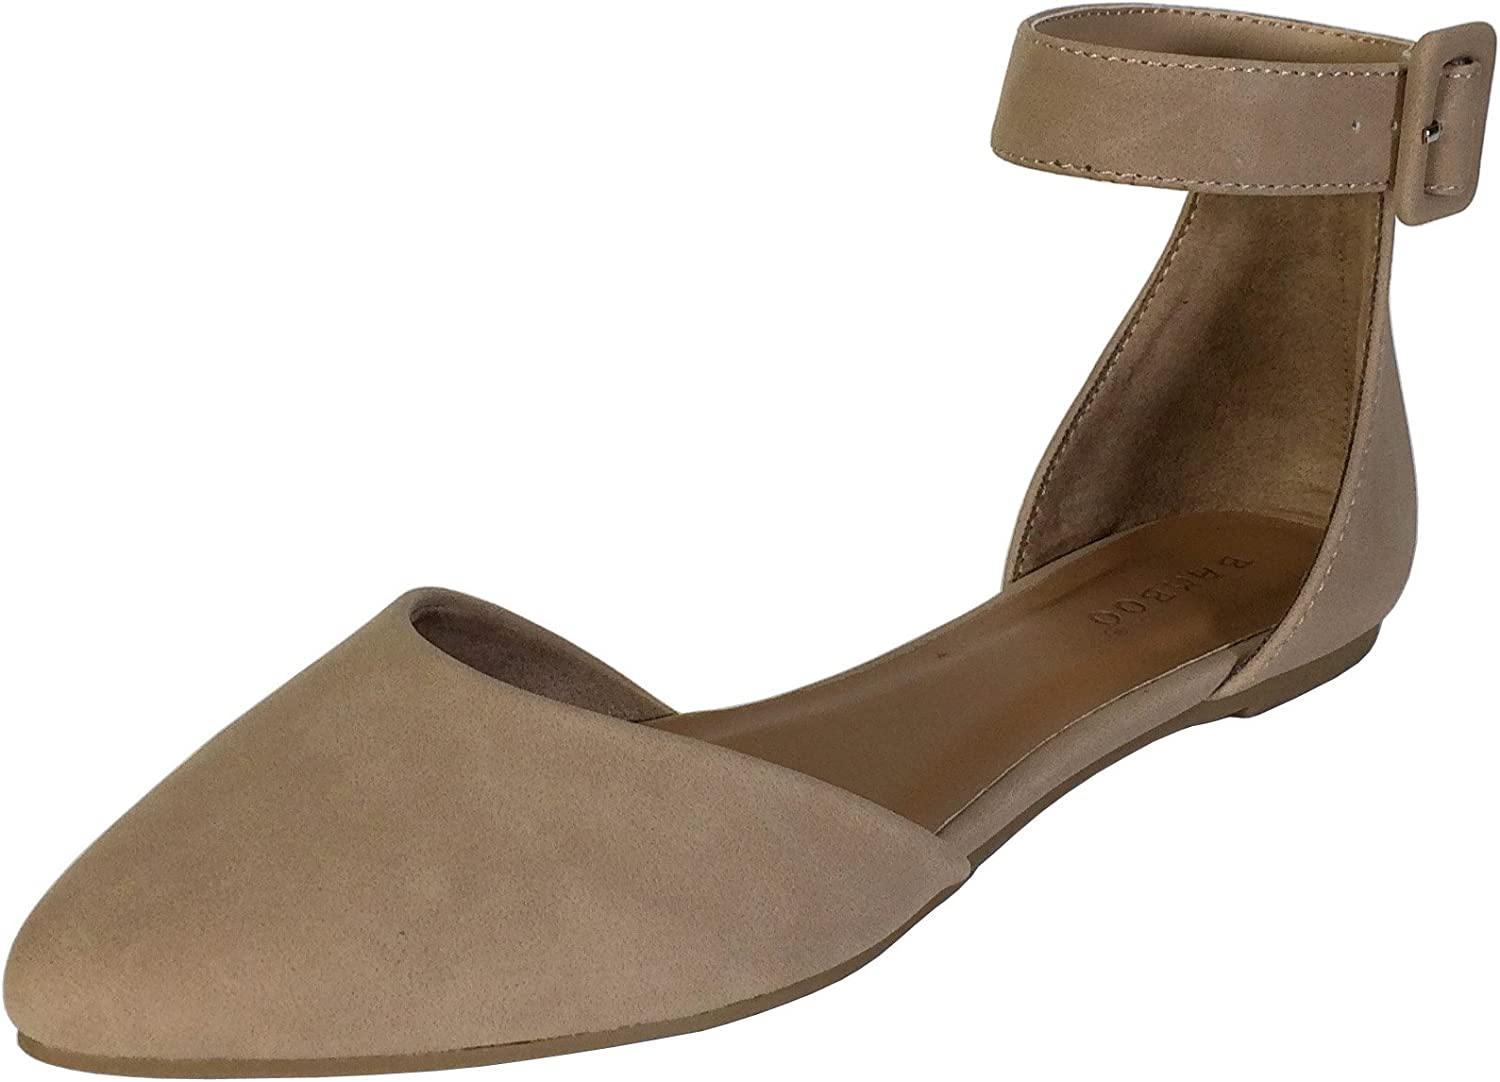 Bamboo Women's Almond Toe Skimmer with Ankle Strap